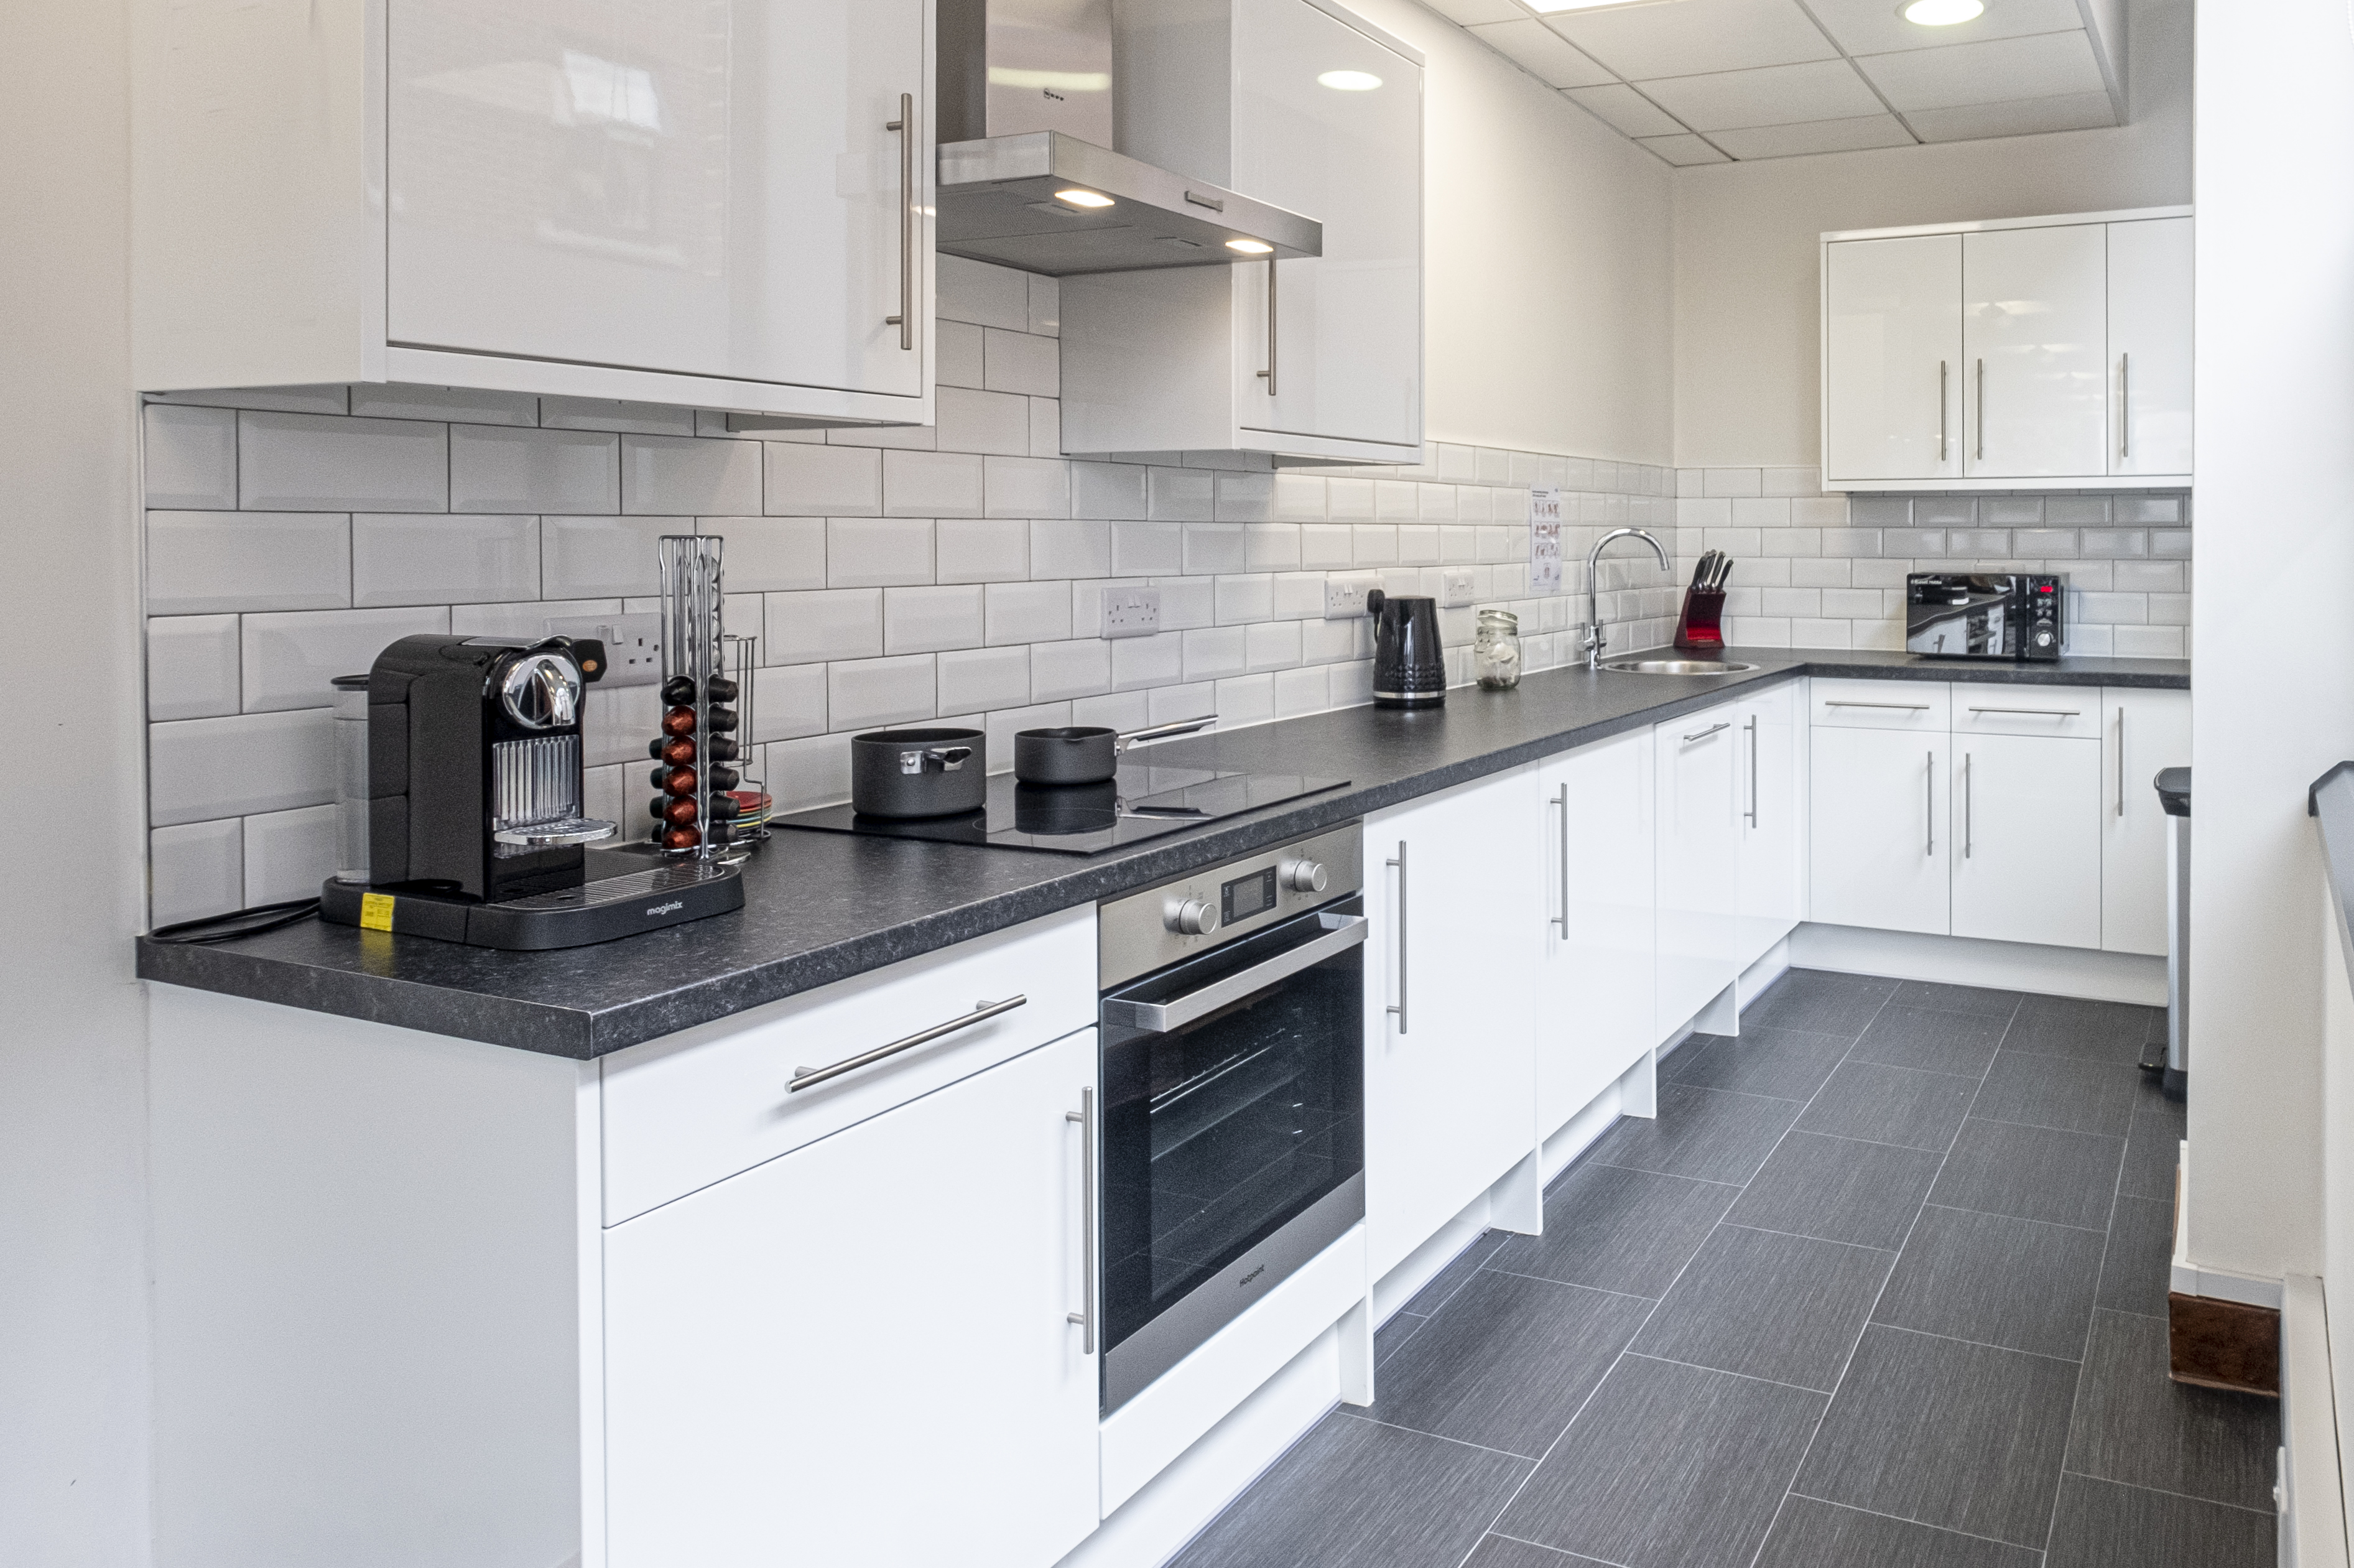 Office kitchen in white gloss by Charmaine ULYATE | Raison Home UK - 1